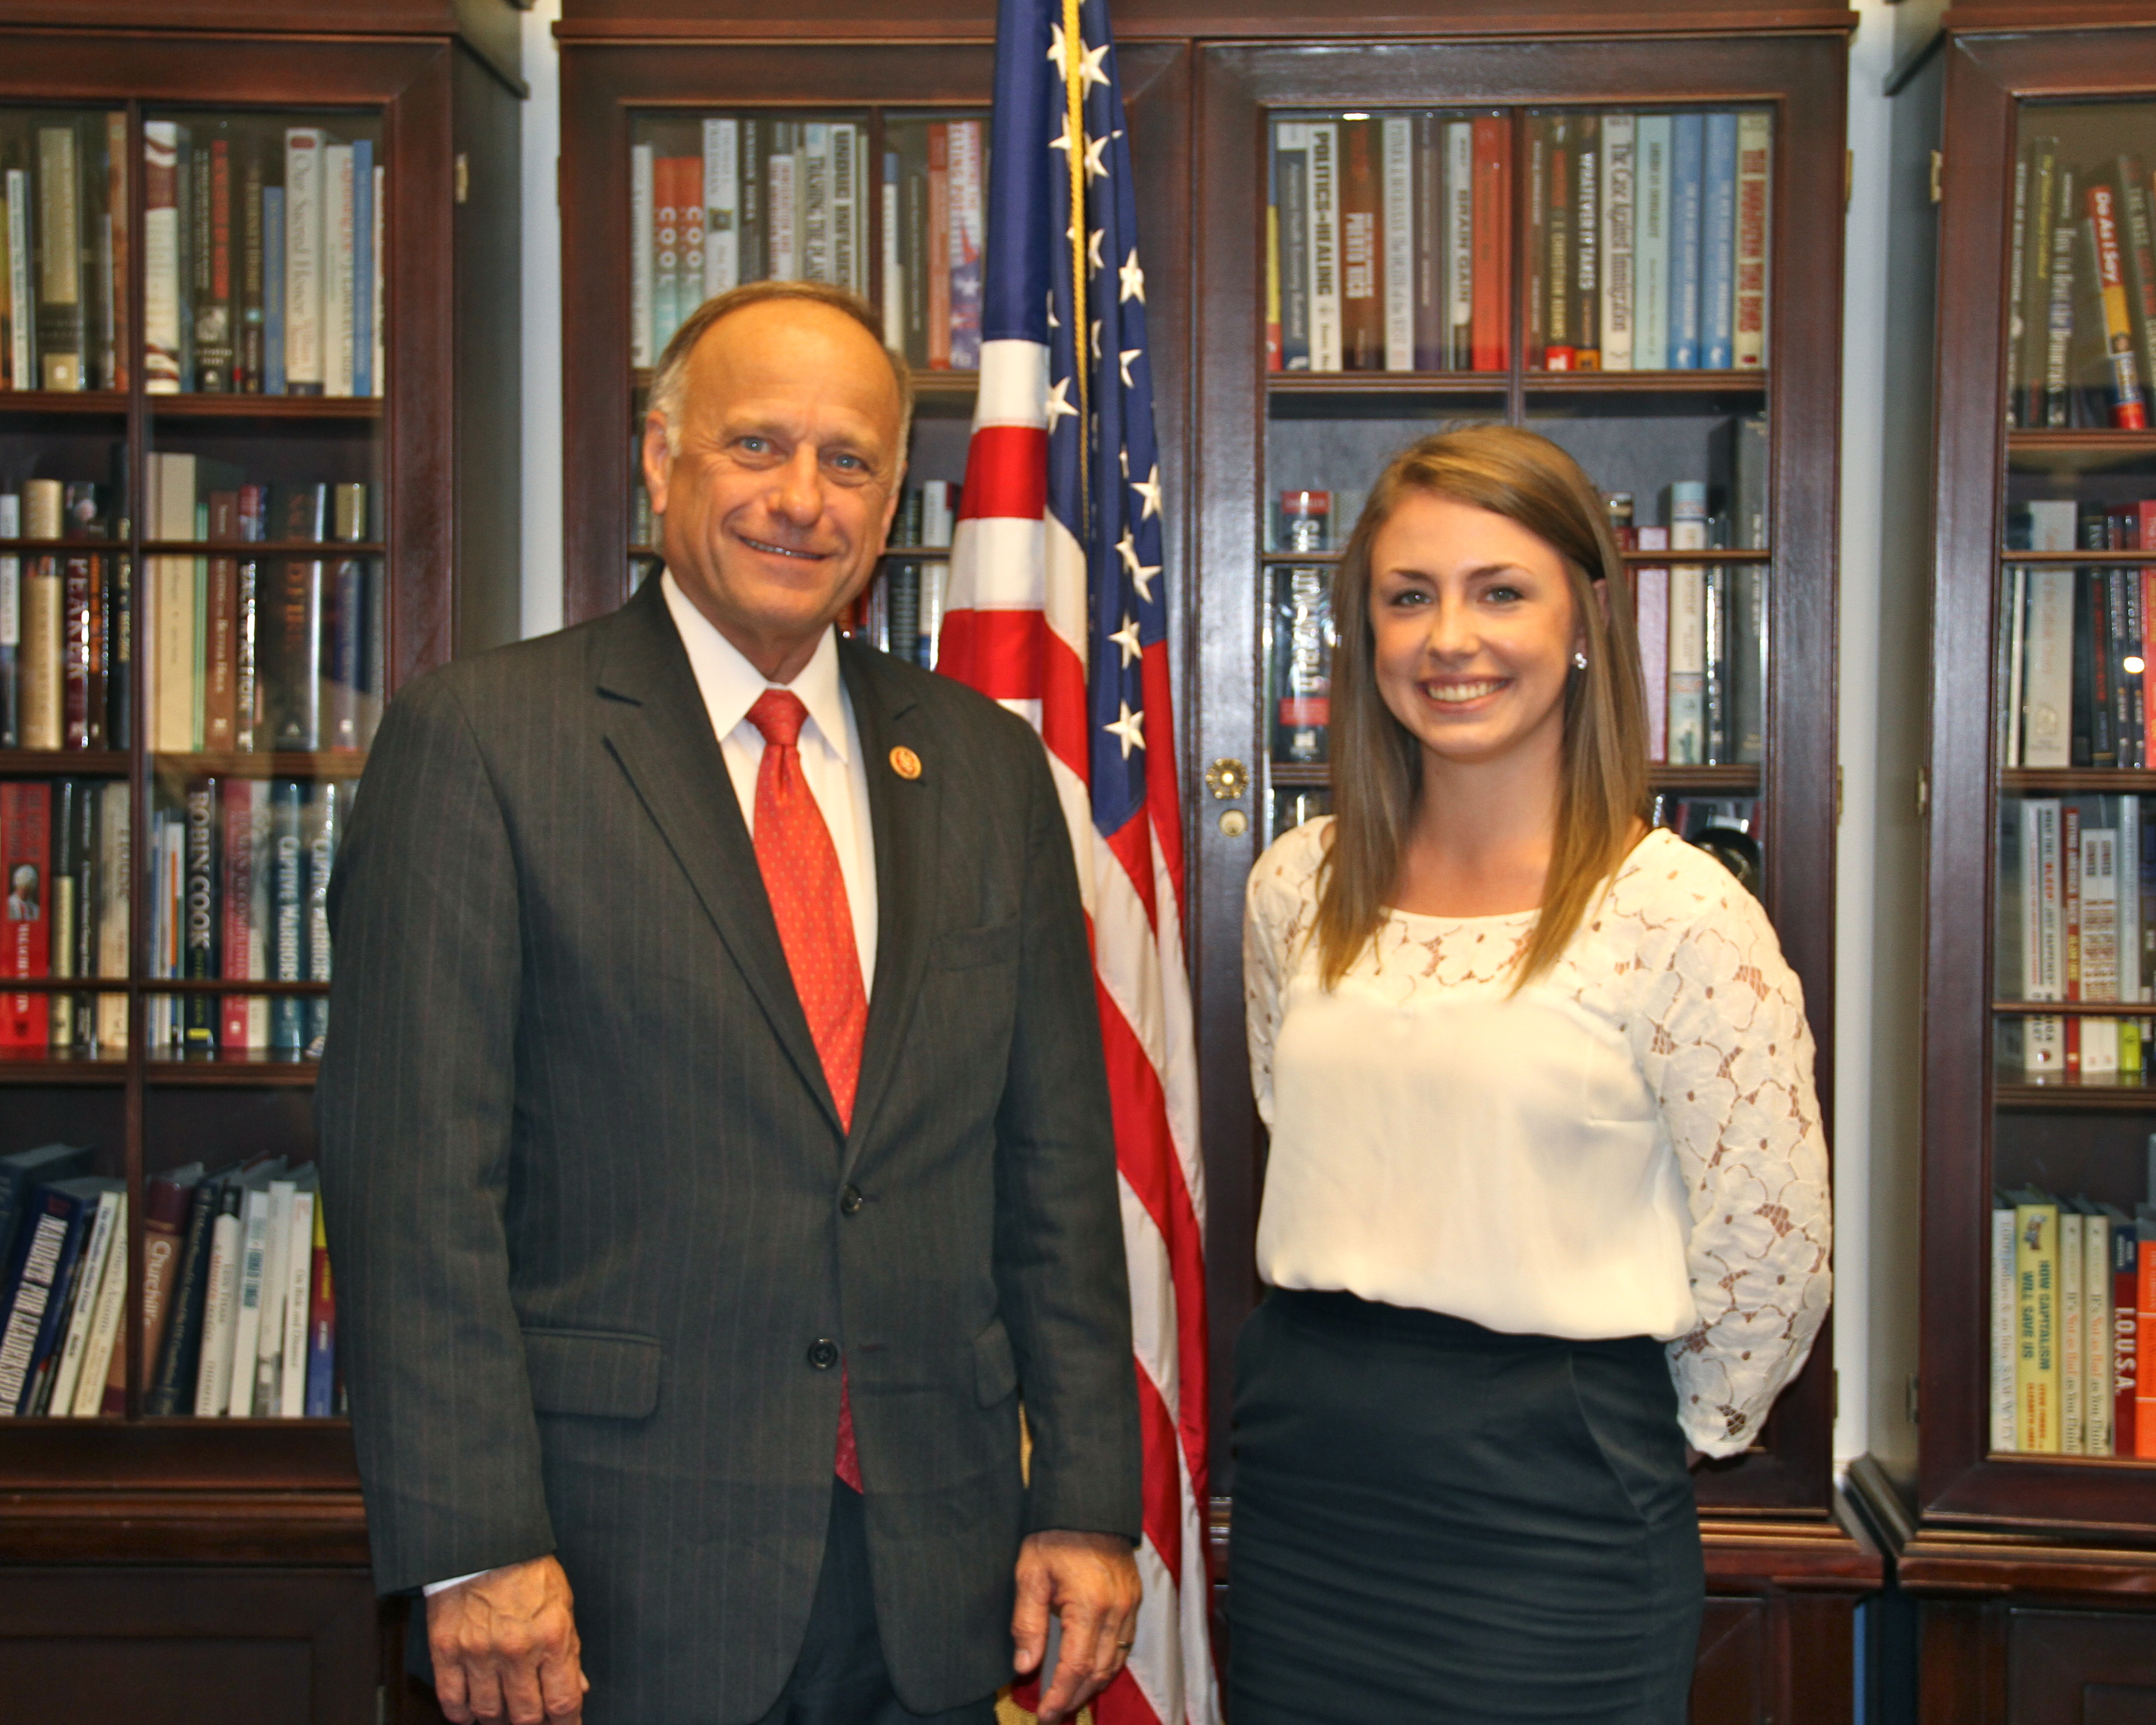 Nora Trotman, majoring in Political Science and Communication Arts, is pictured with Congressman Steve King (R IA-4) during her internship in Washington, D.C.